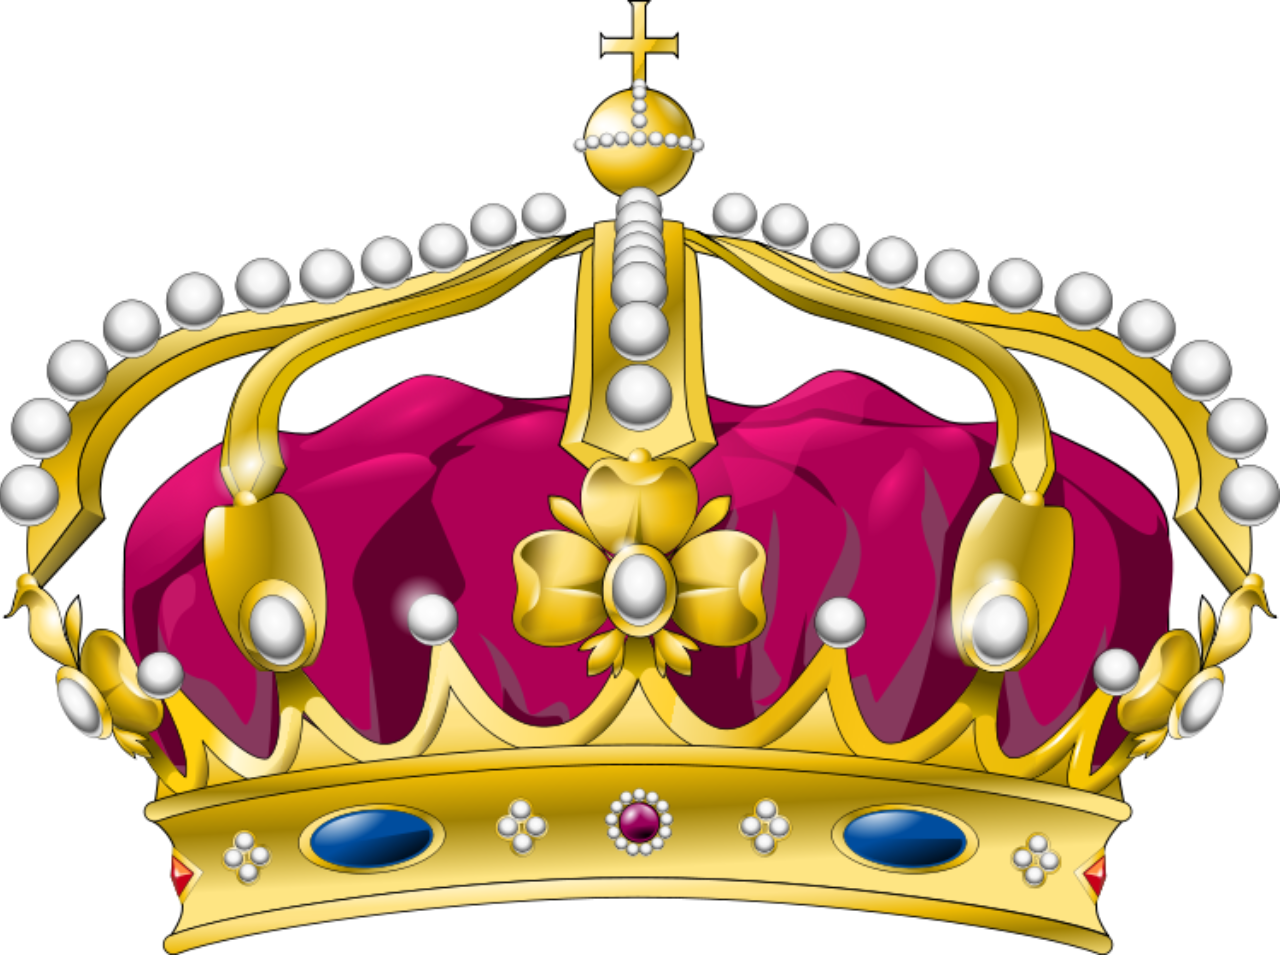 Queen clipart transparent background. Crown clip art png